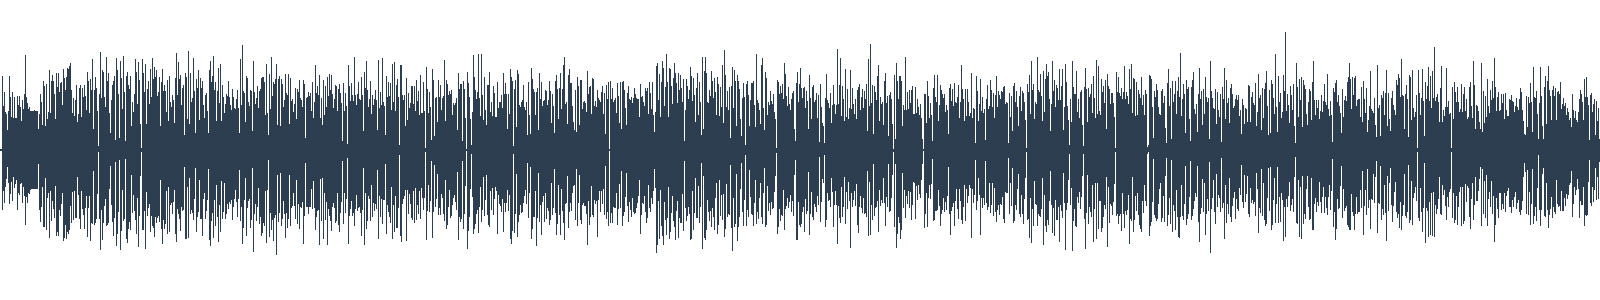 Historie Youtube 2. díl waveform